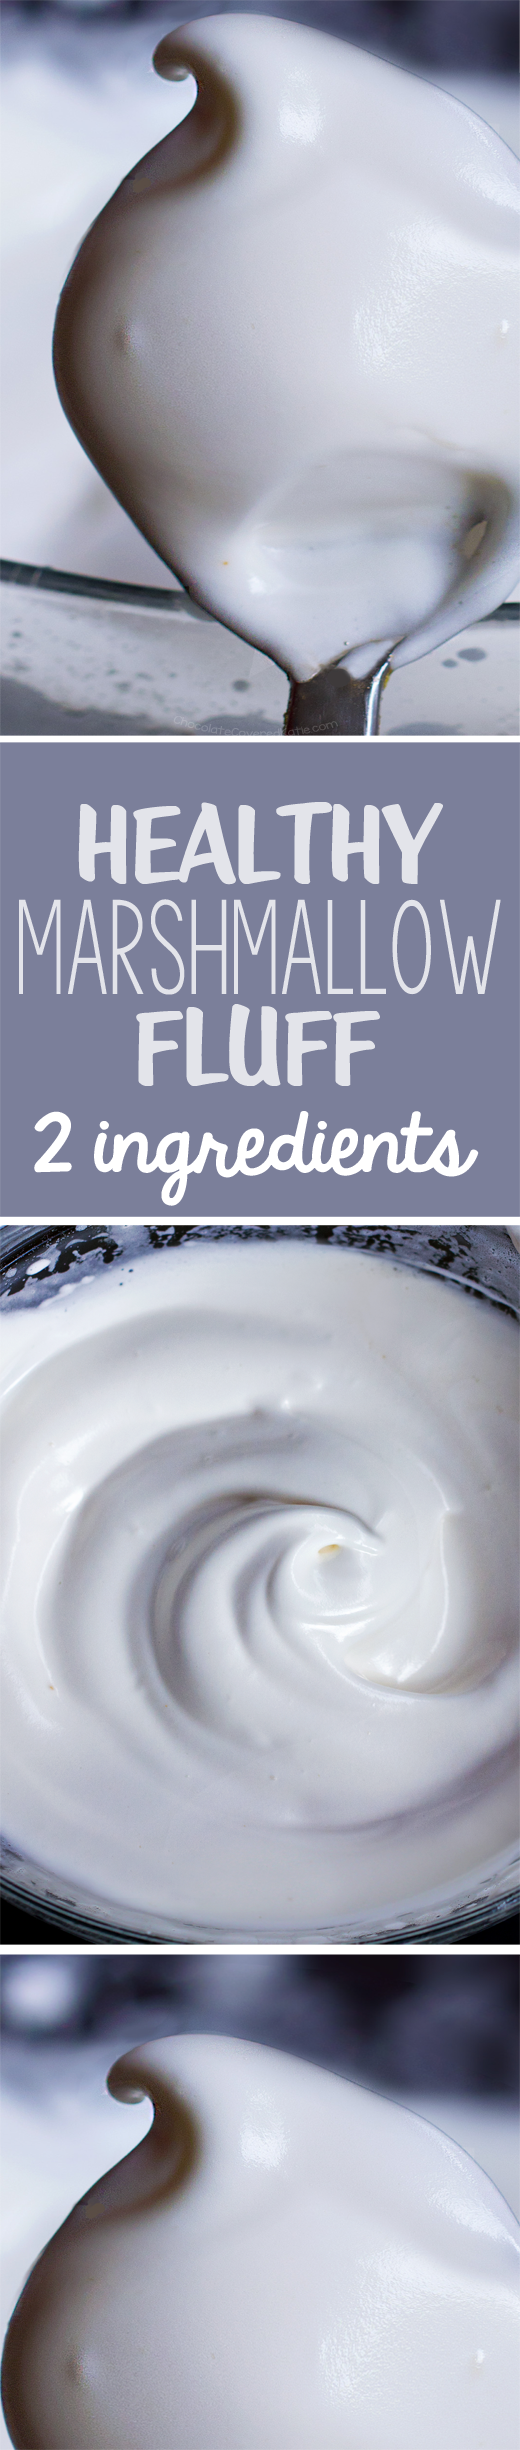 You will NEVER believe the 2 ingredients that make this healthy marshmallow fluff... it is insane that this actually works! https://chocolatecoveredkatie.com/2015/04/30/healthy-vegan-marshmallow-fluff/